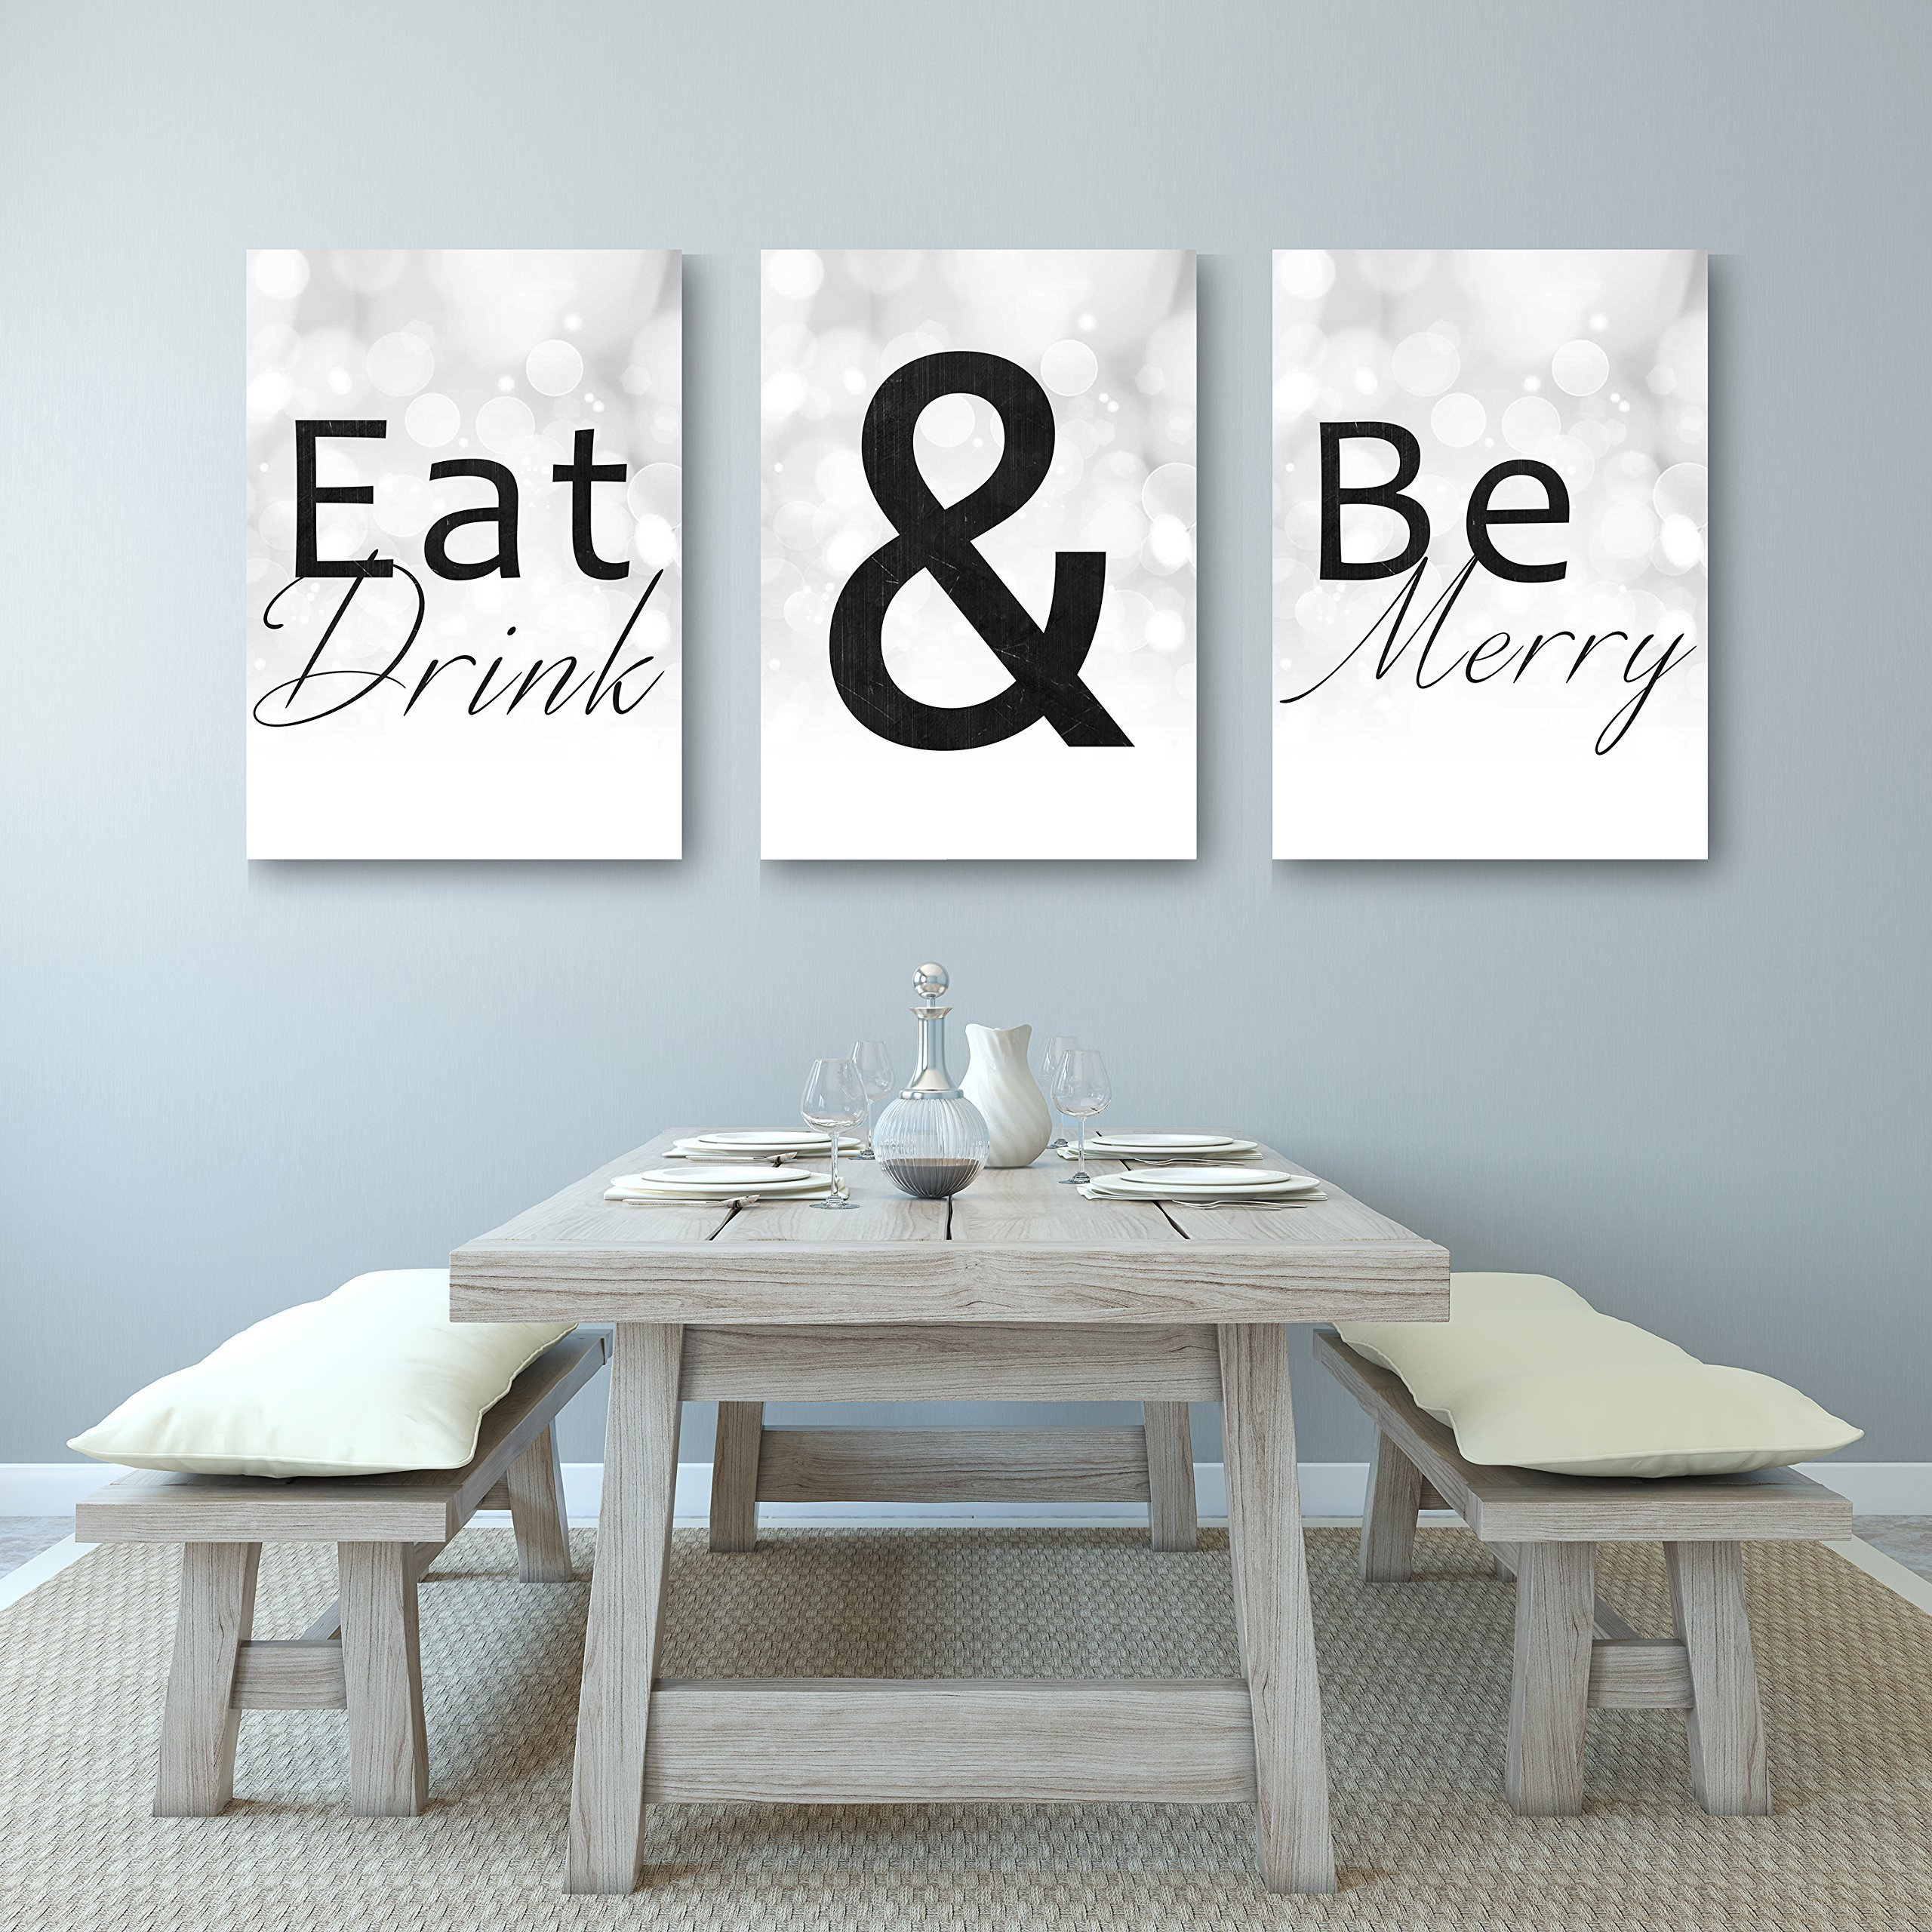 Eat Drink And Be Merry - Beautiful Kitchen Or Dining Decor Canvases - Set of 3 Canvases by anniversary-gifts (Image #1)